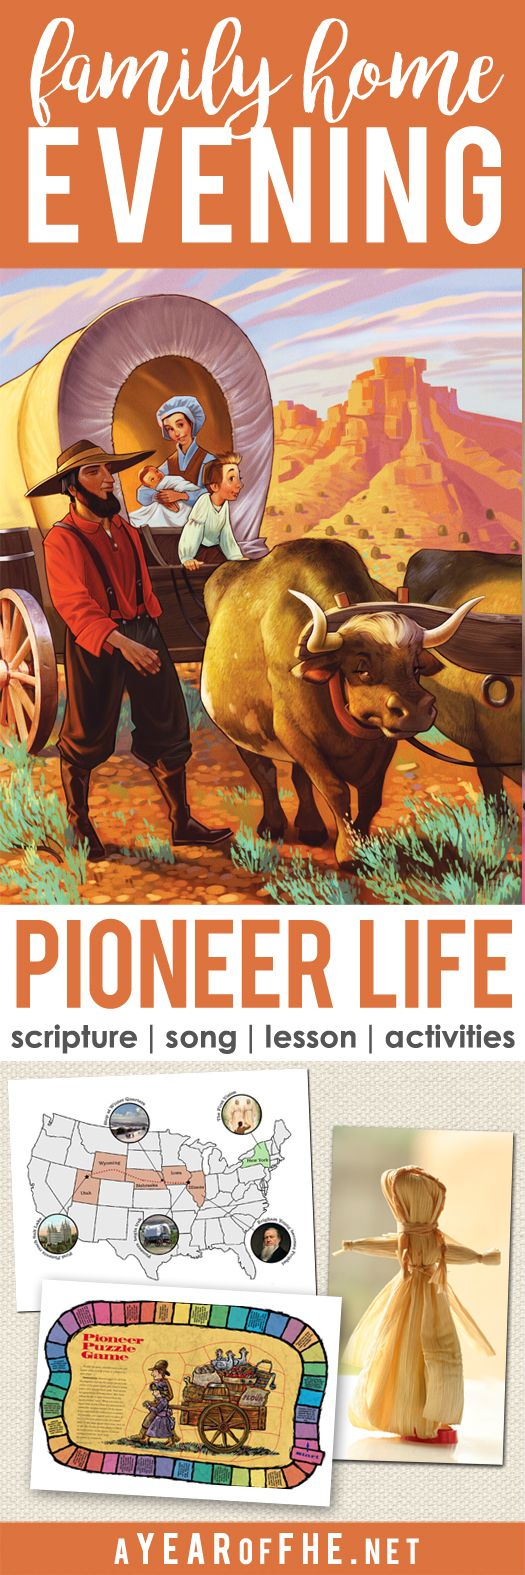 A Year of FHE // a Family home Evening about the daily life of the Mormon pioneers as they crossed the plains to Salt Lake City, Utah.  This is so fun to teach the night before Pioneer Day! Includes a scripture, song, lesson and two activities to choose from. #fhe #lds #pioneer